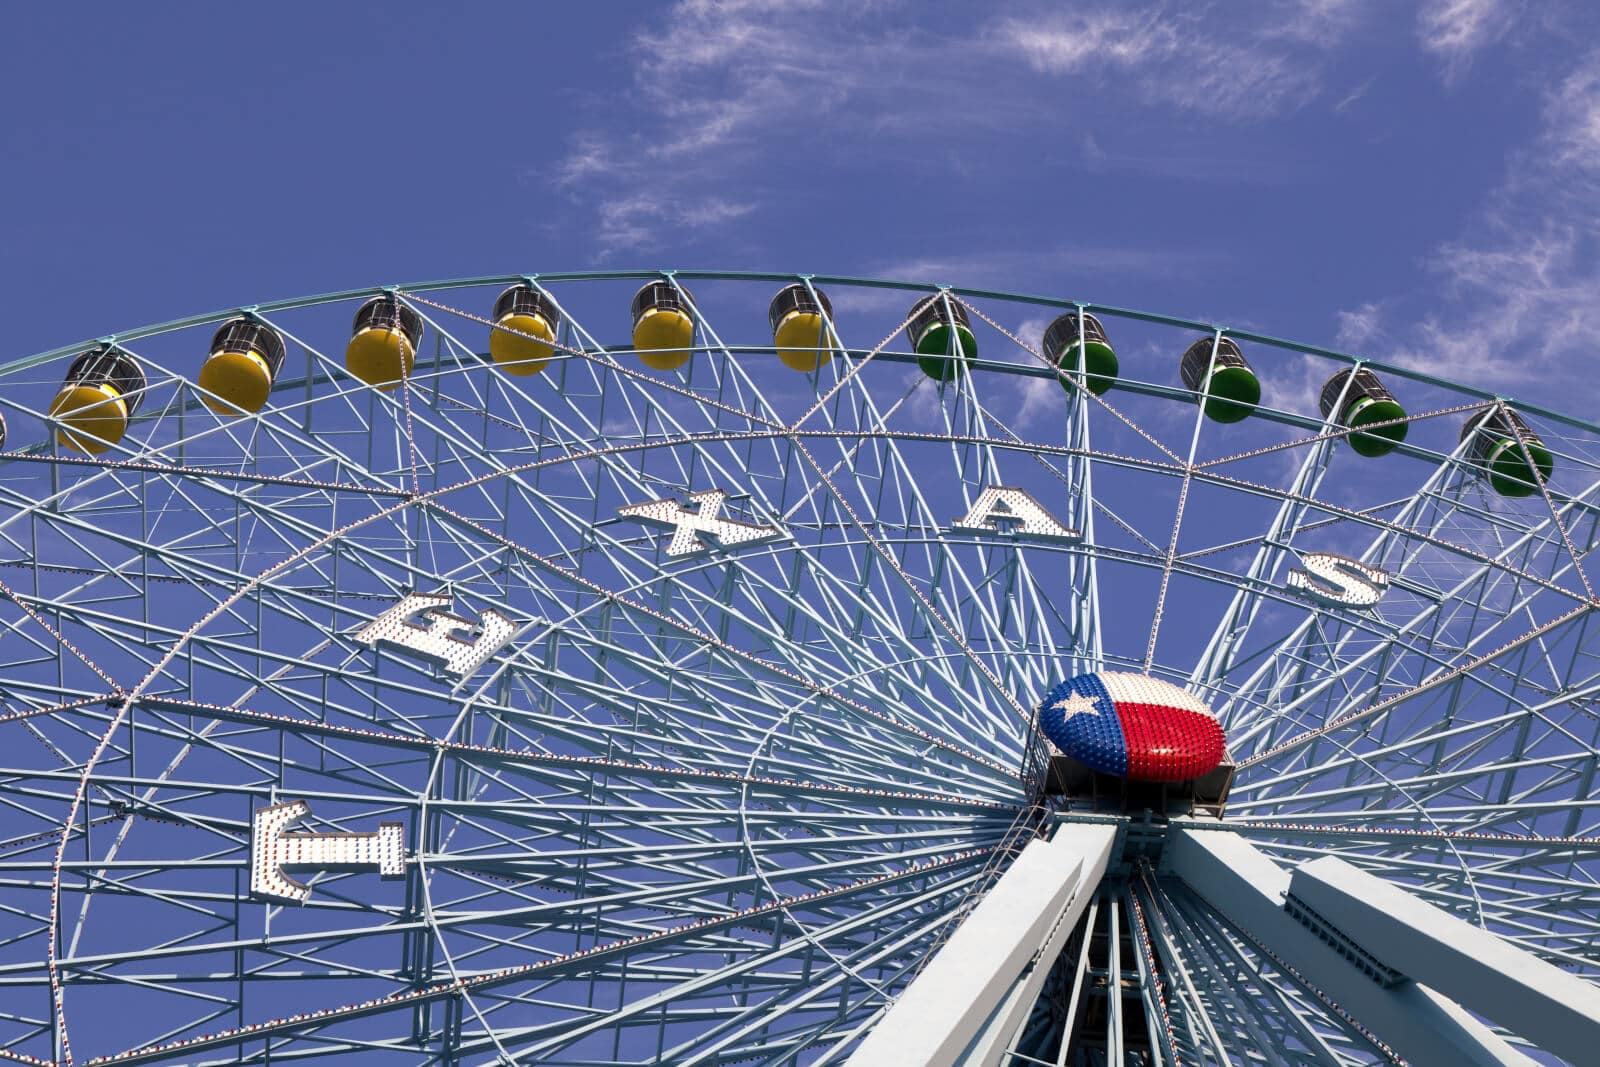 The Ferris Wheel At The Texas State Fairgrounds In Dallas, Texas